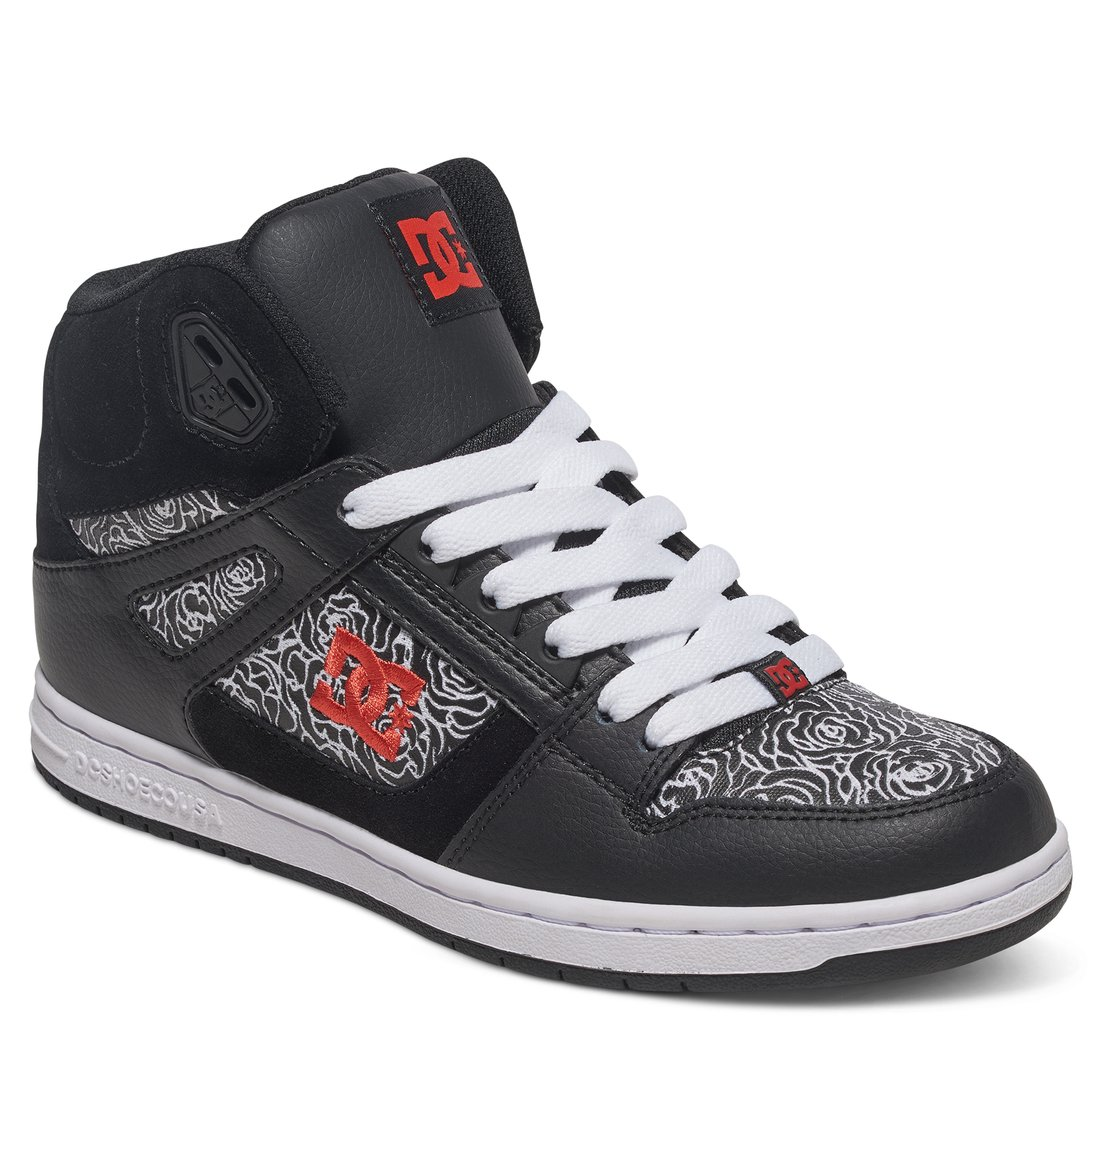 Dc Shoes Ebay Store